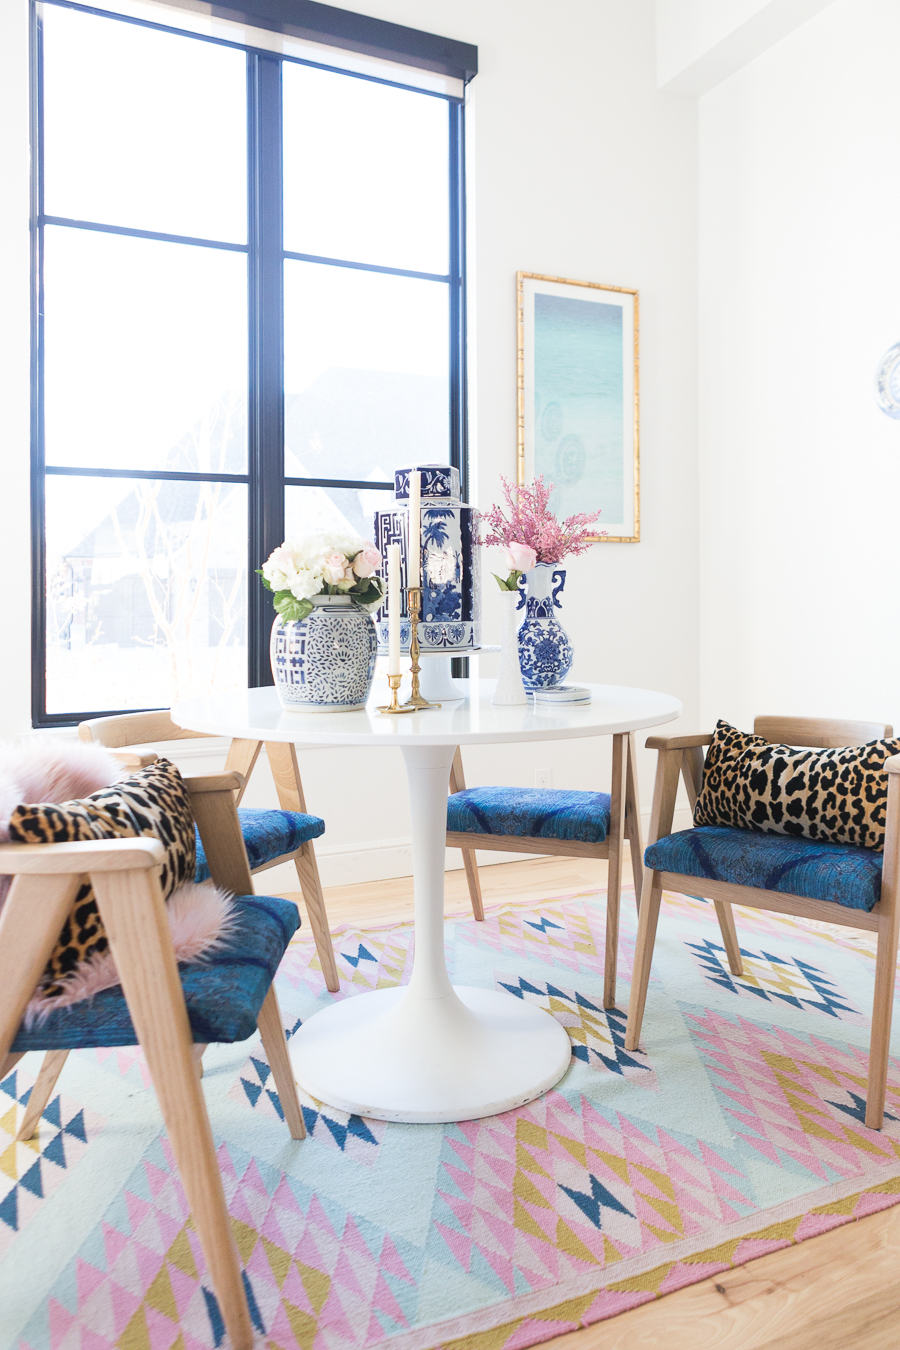 19 Feb Rooms We Love Home Tour Modern Glam Breakfast Nook